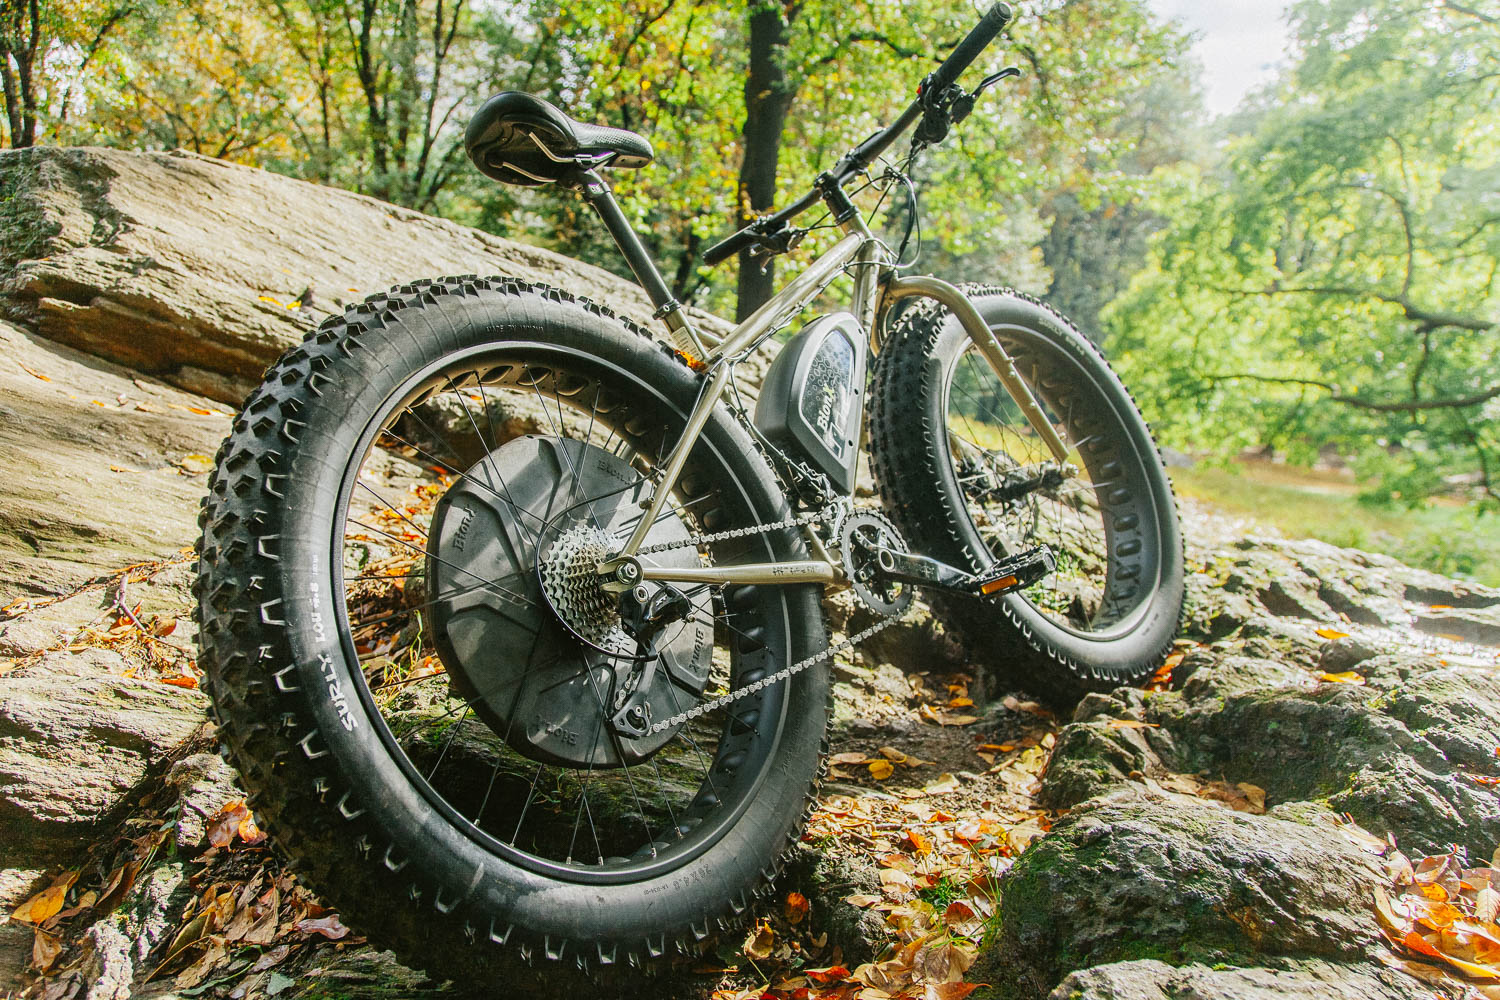 Surly Fat Bike in Central Park, Manhattan. Canon 5D Mark II, 50mm f/1.2.